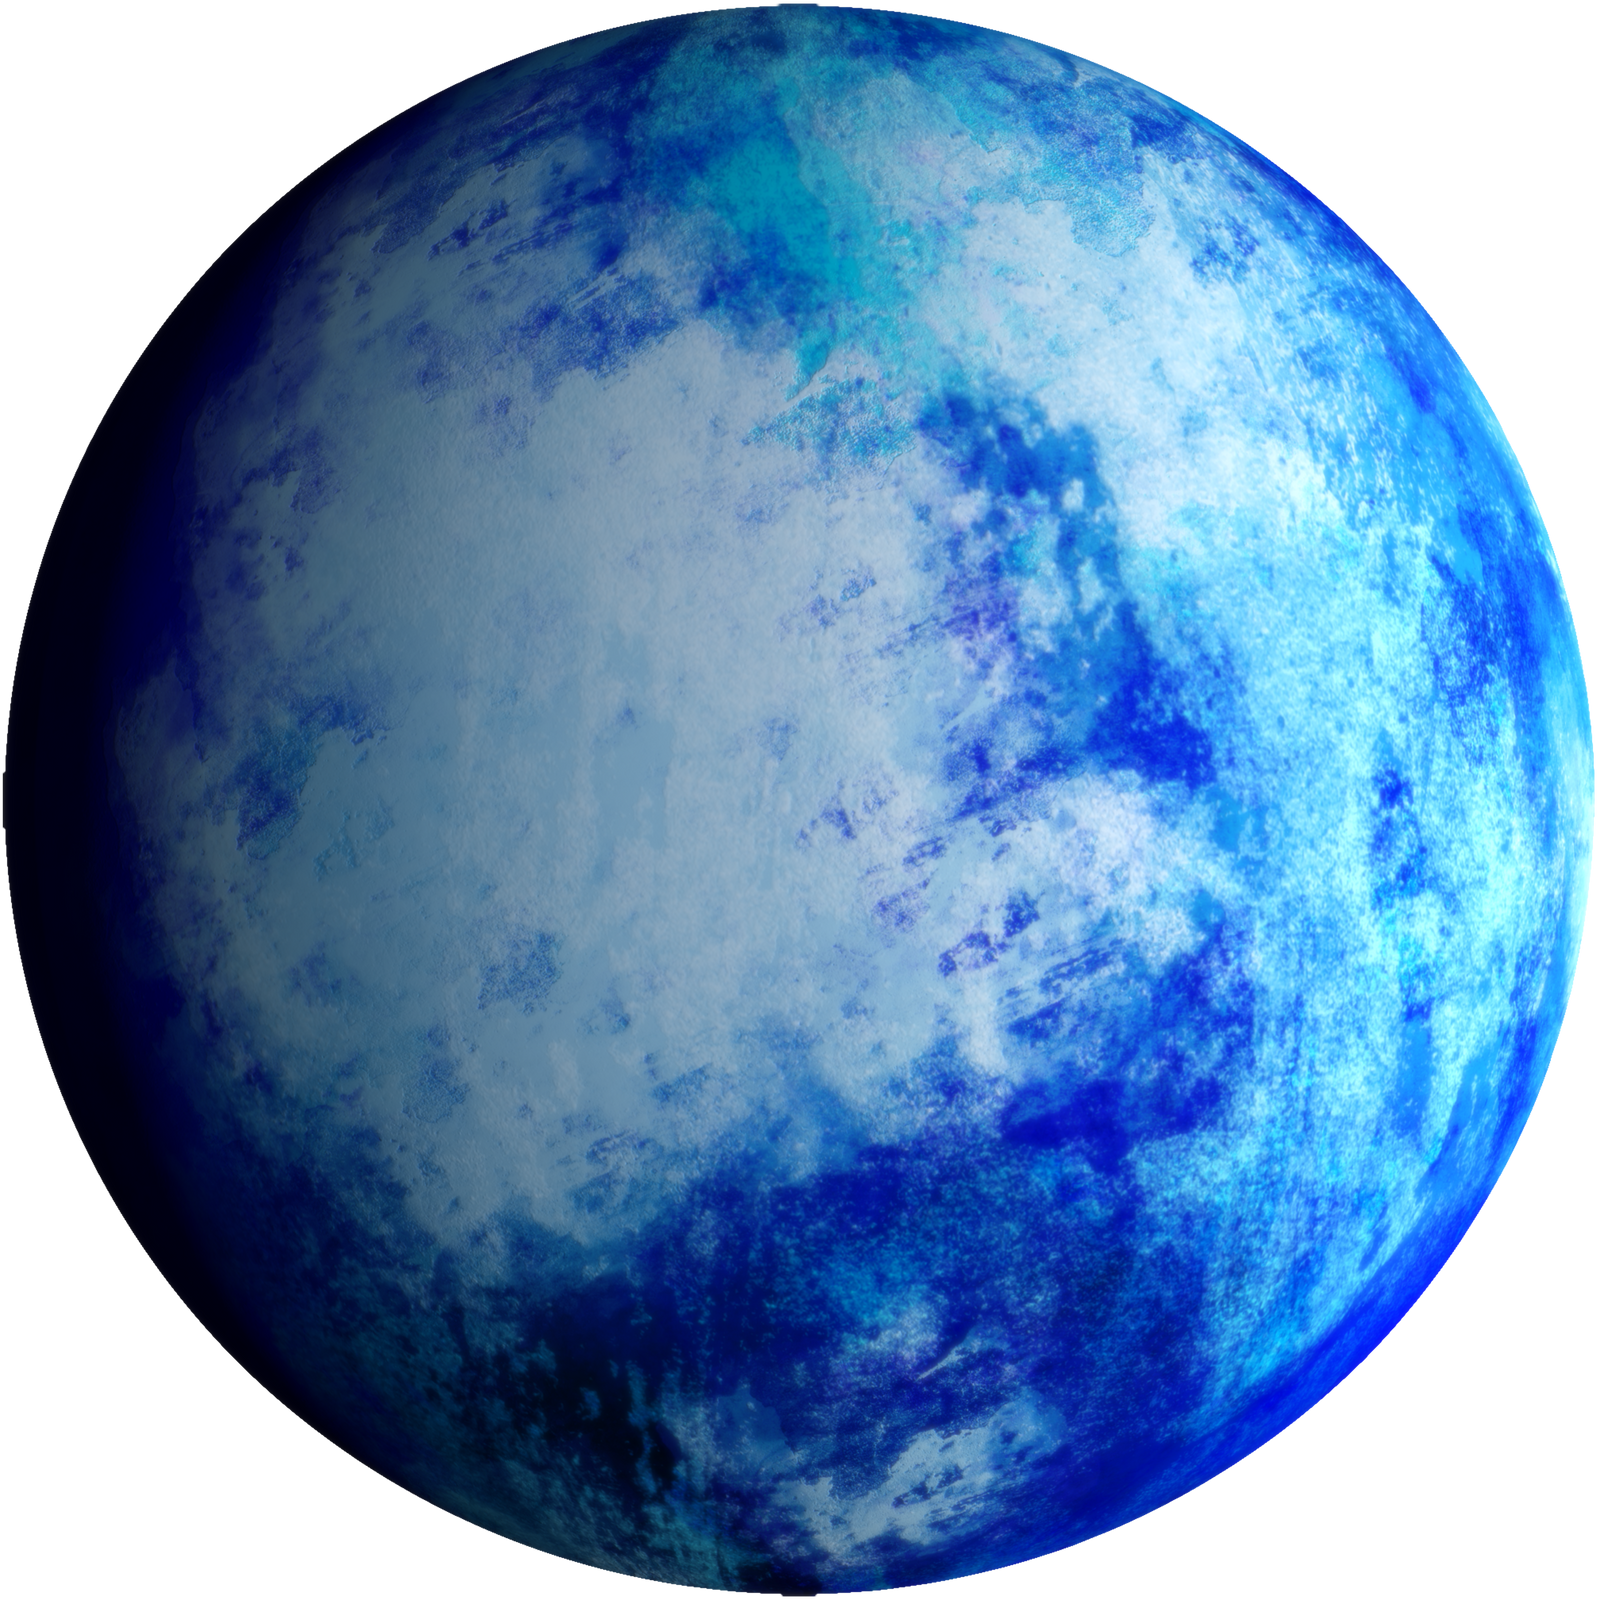 cute planets transparent - photo #44